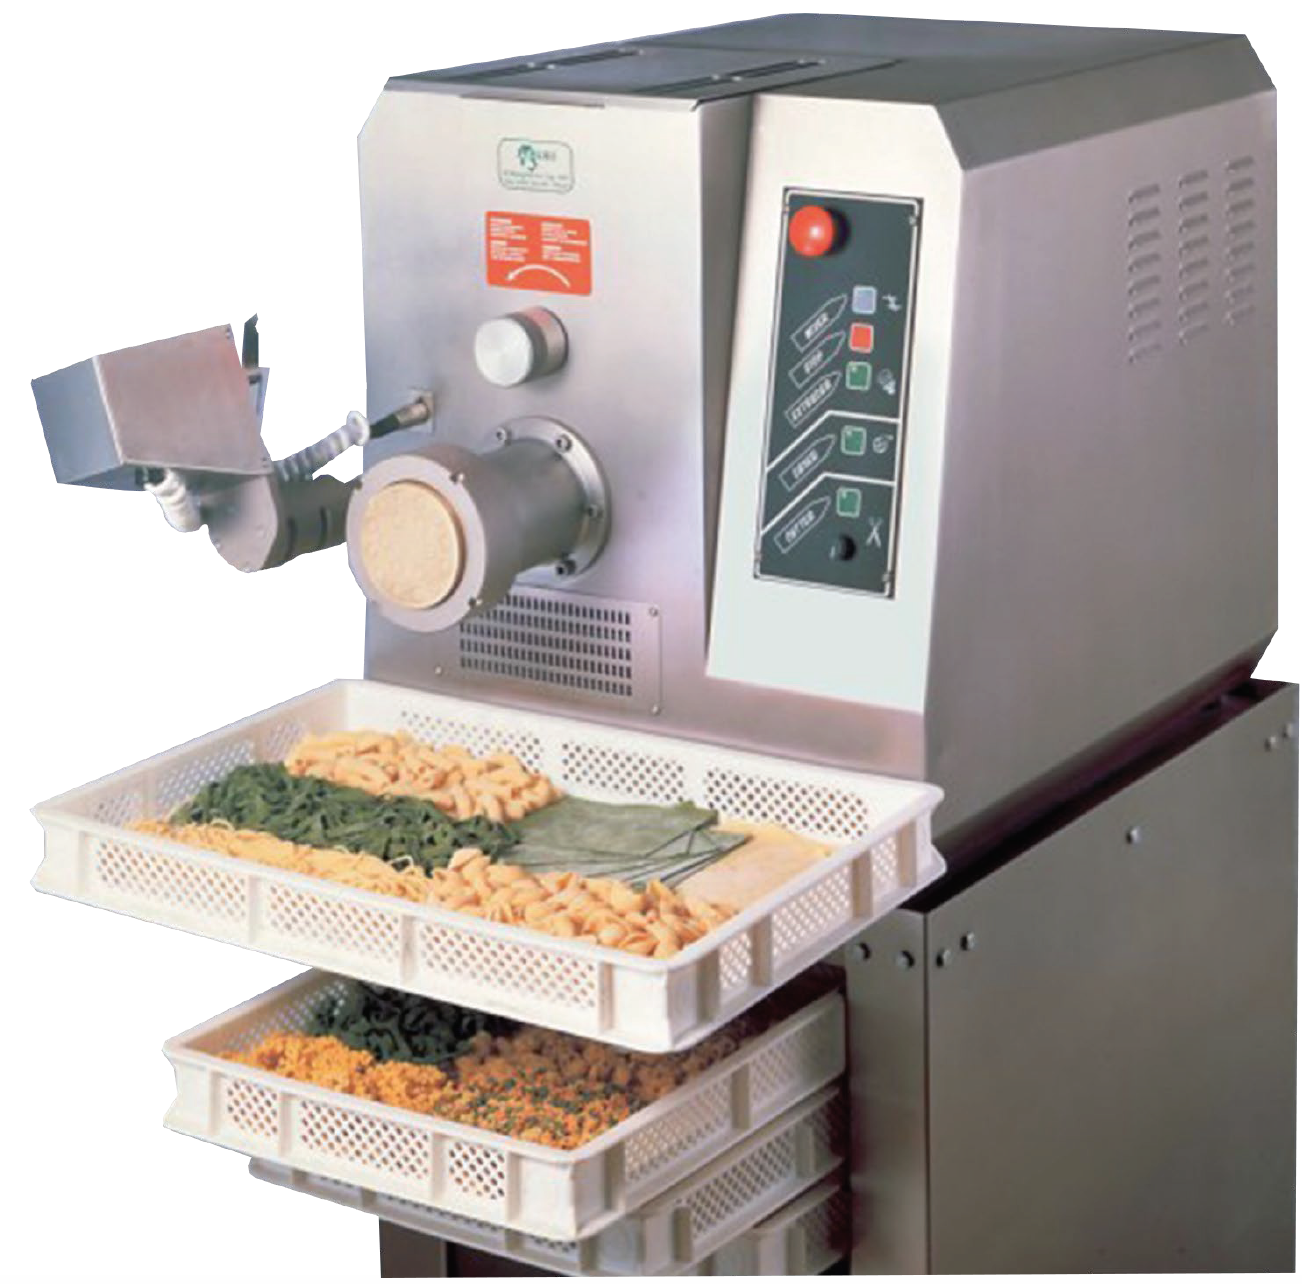 P35A   Pasta machine (Pasta extruder)  Hourly production:  30 Kg